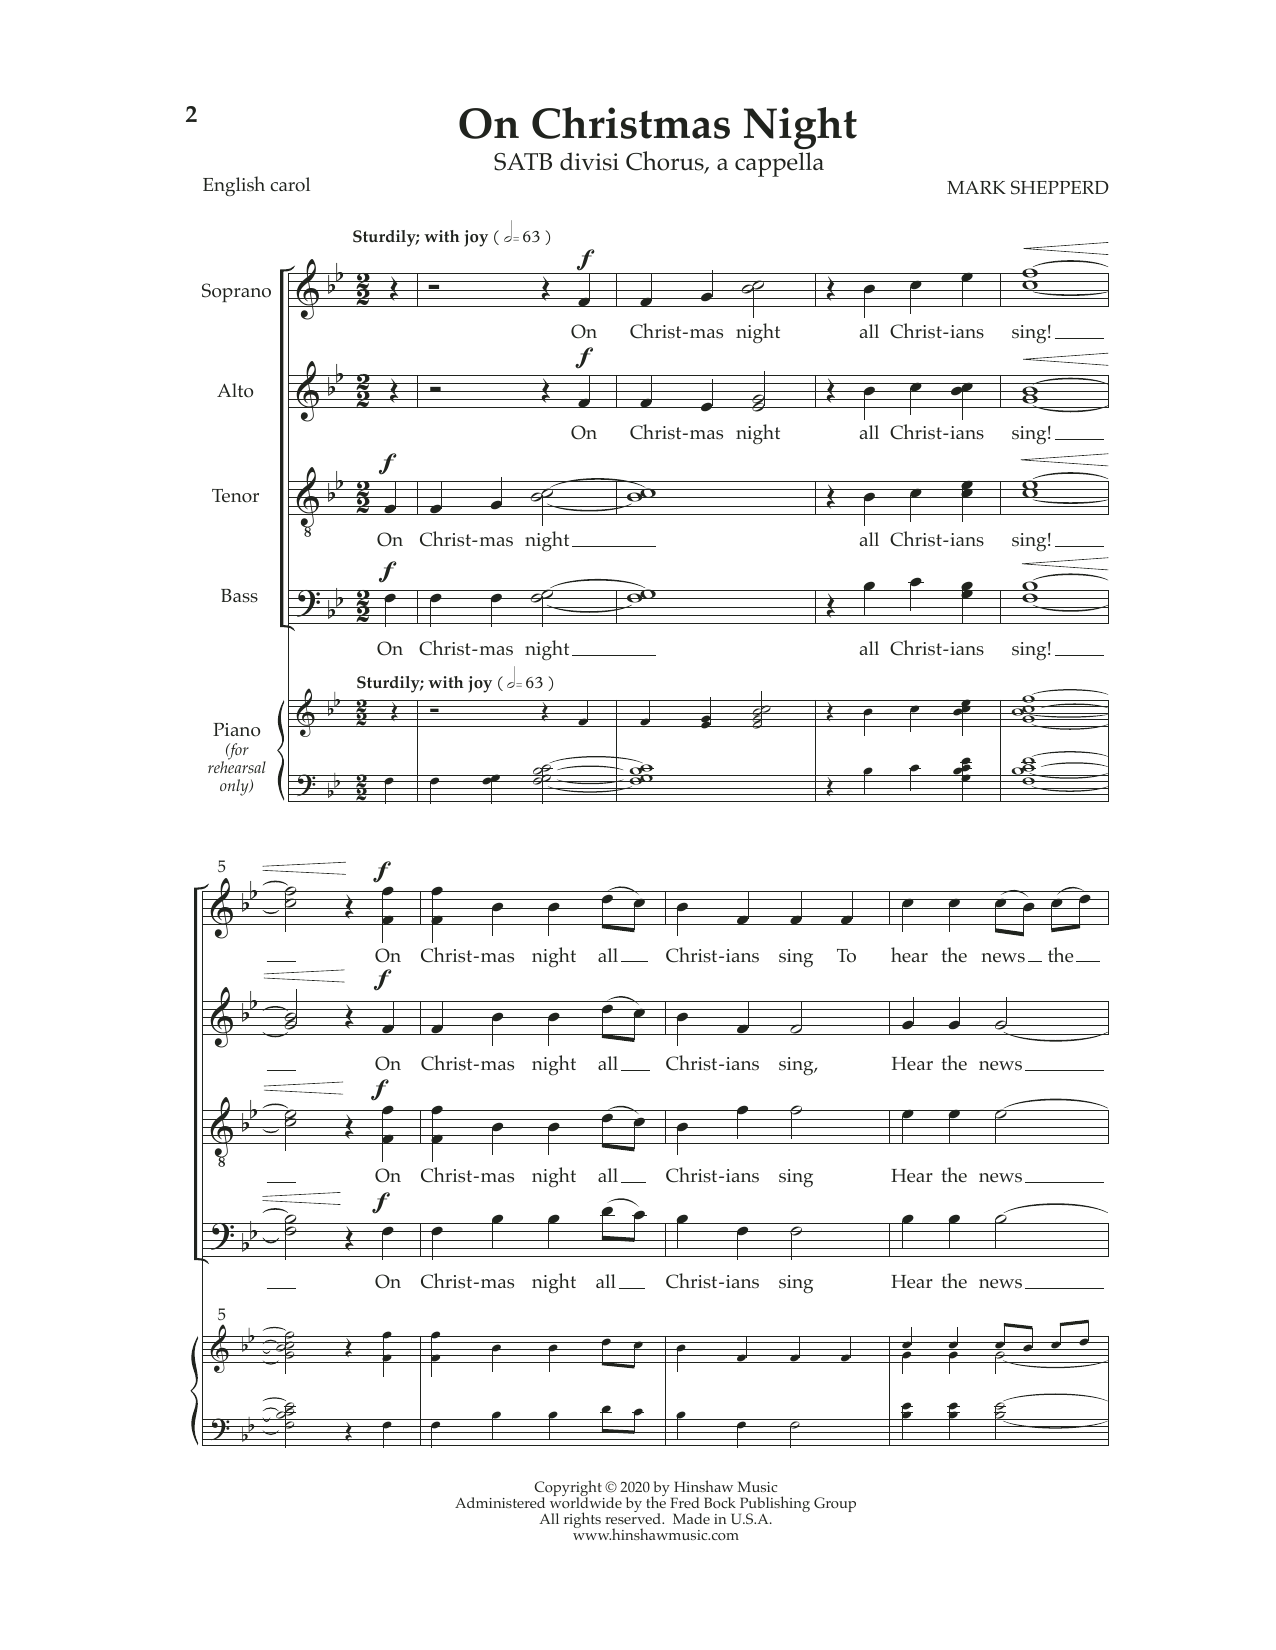 Mark Shepperd On Christmas Night sheet music notes and chords. Download Printable PDF.